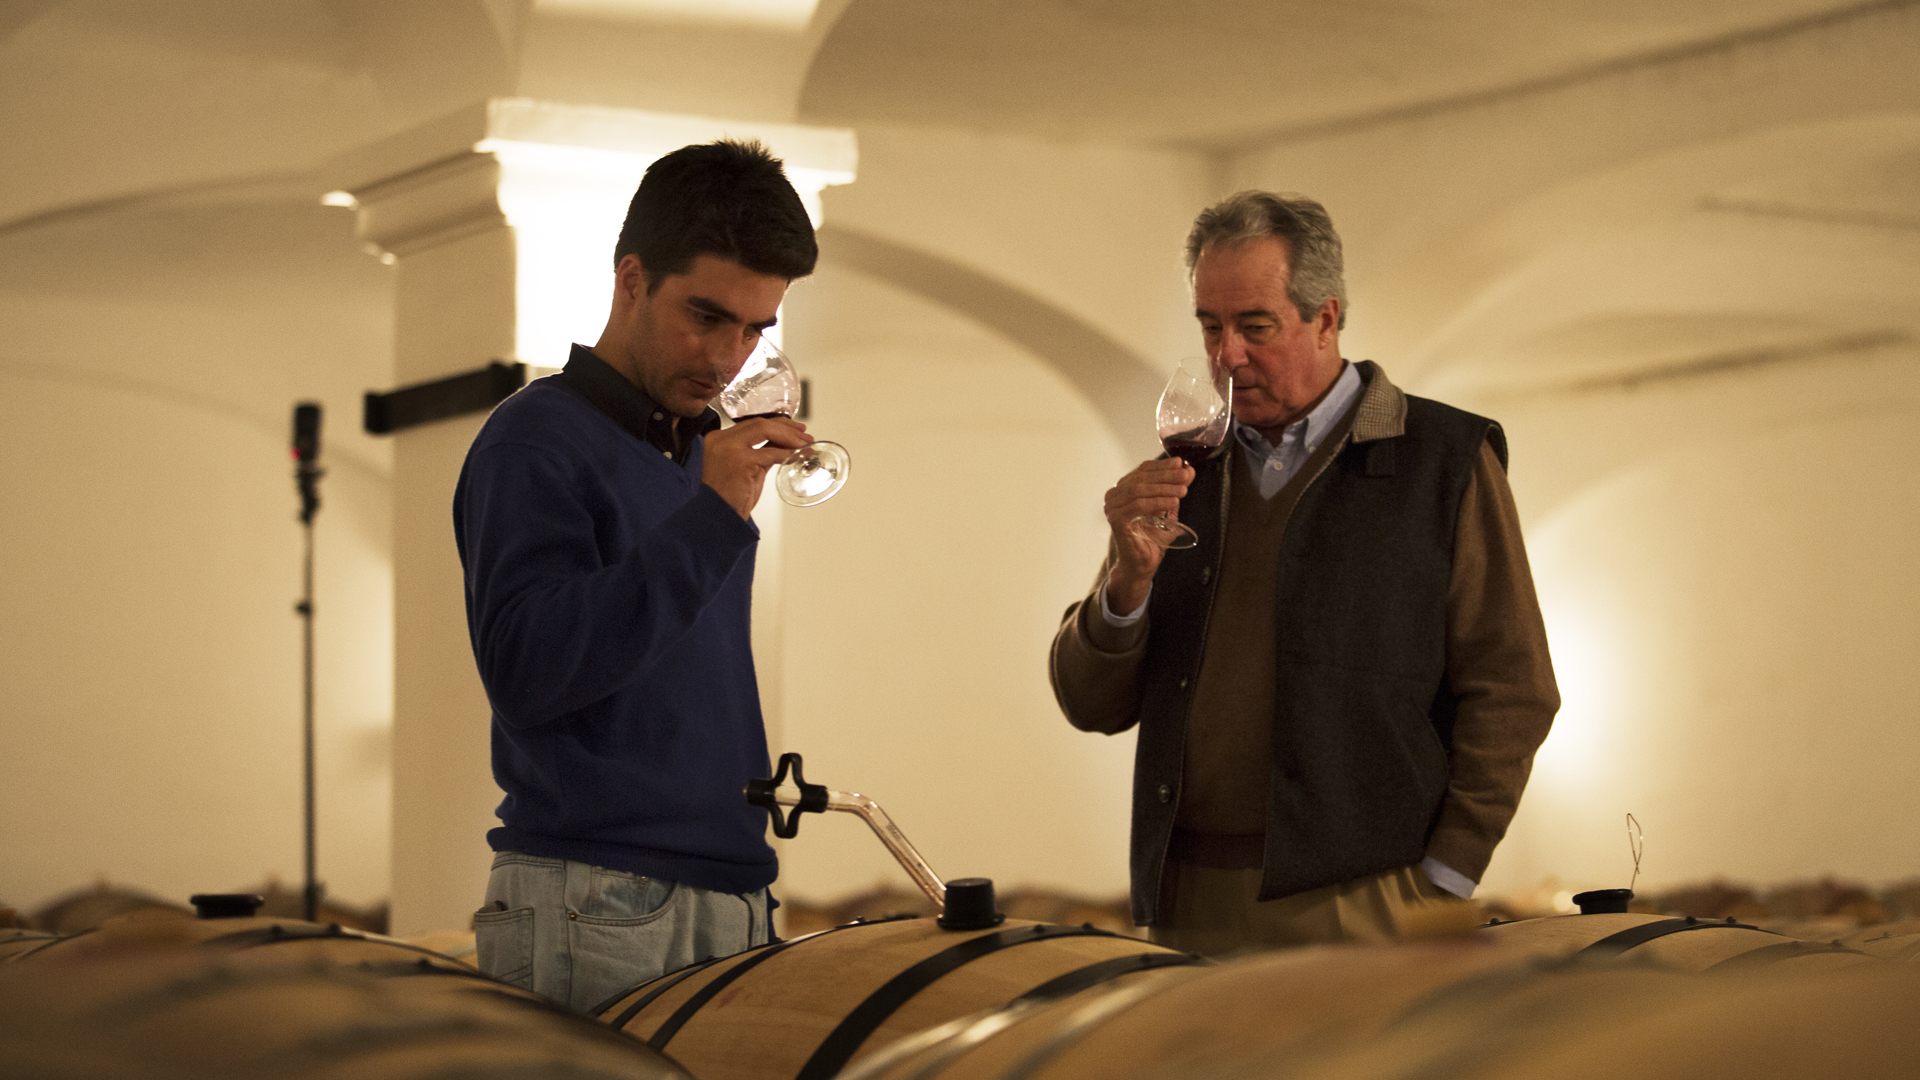 The Winemakers João Portugal Ramos and João Maria, father and son